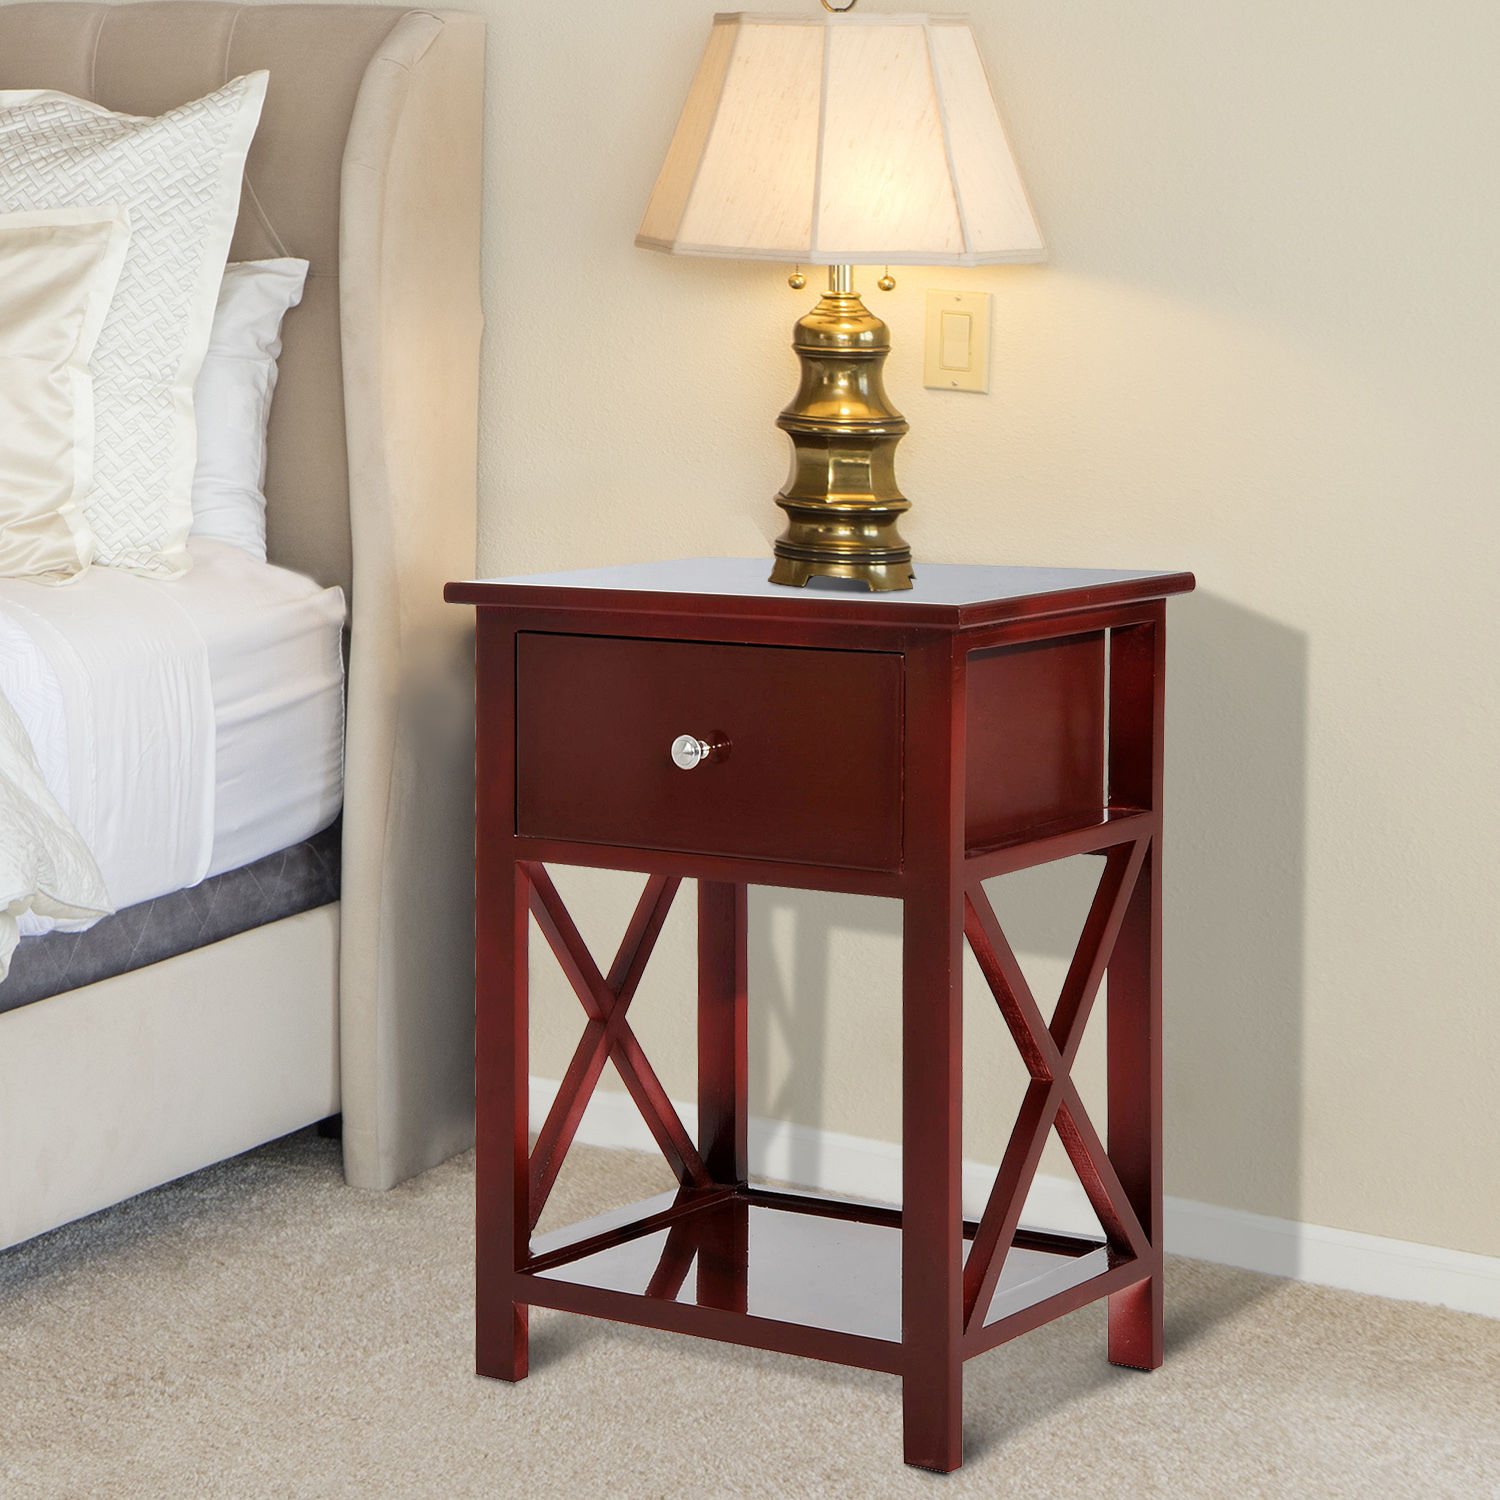 Wooden End Side Bedside Table Nightstand Bedroom Decor w Drawer